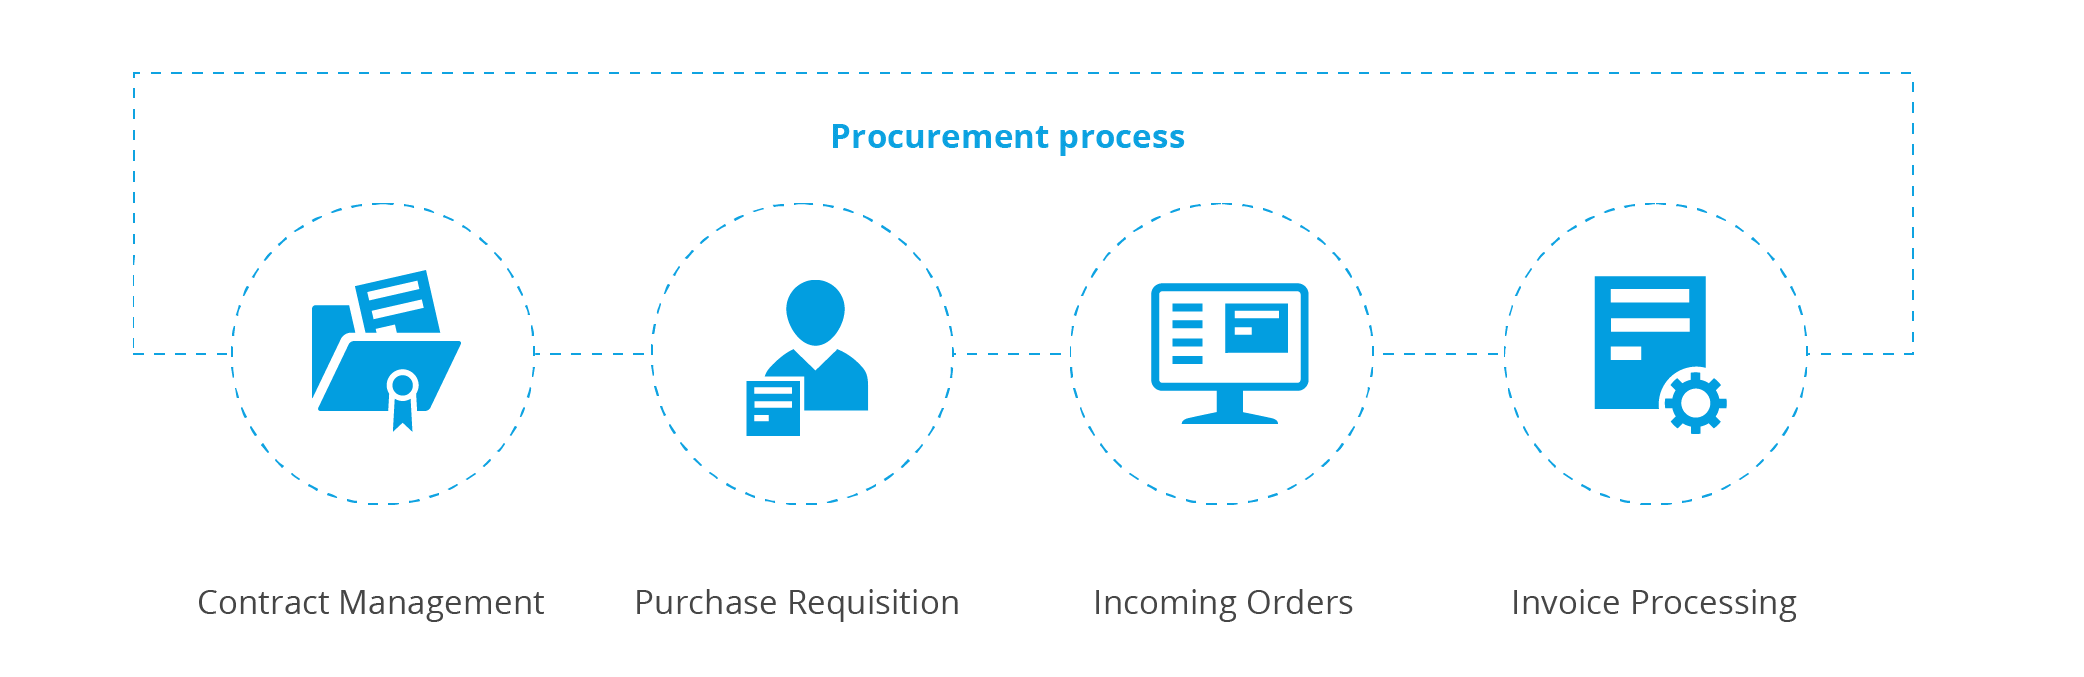 The procurement process in the company